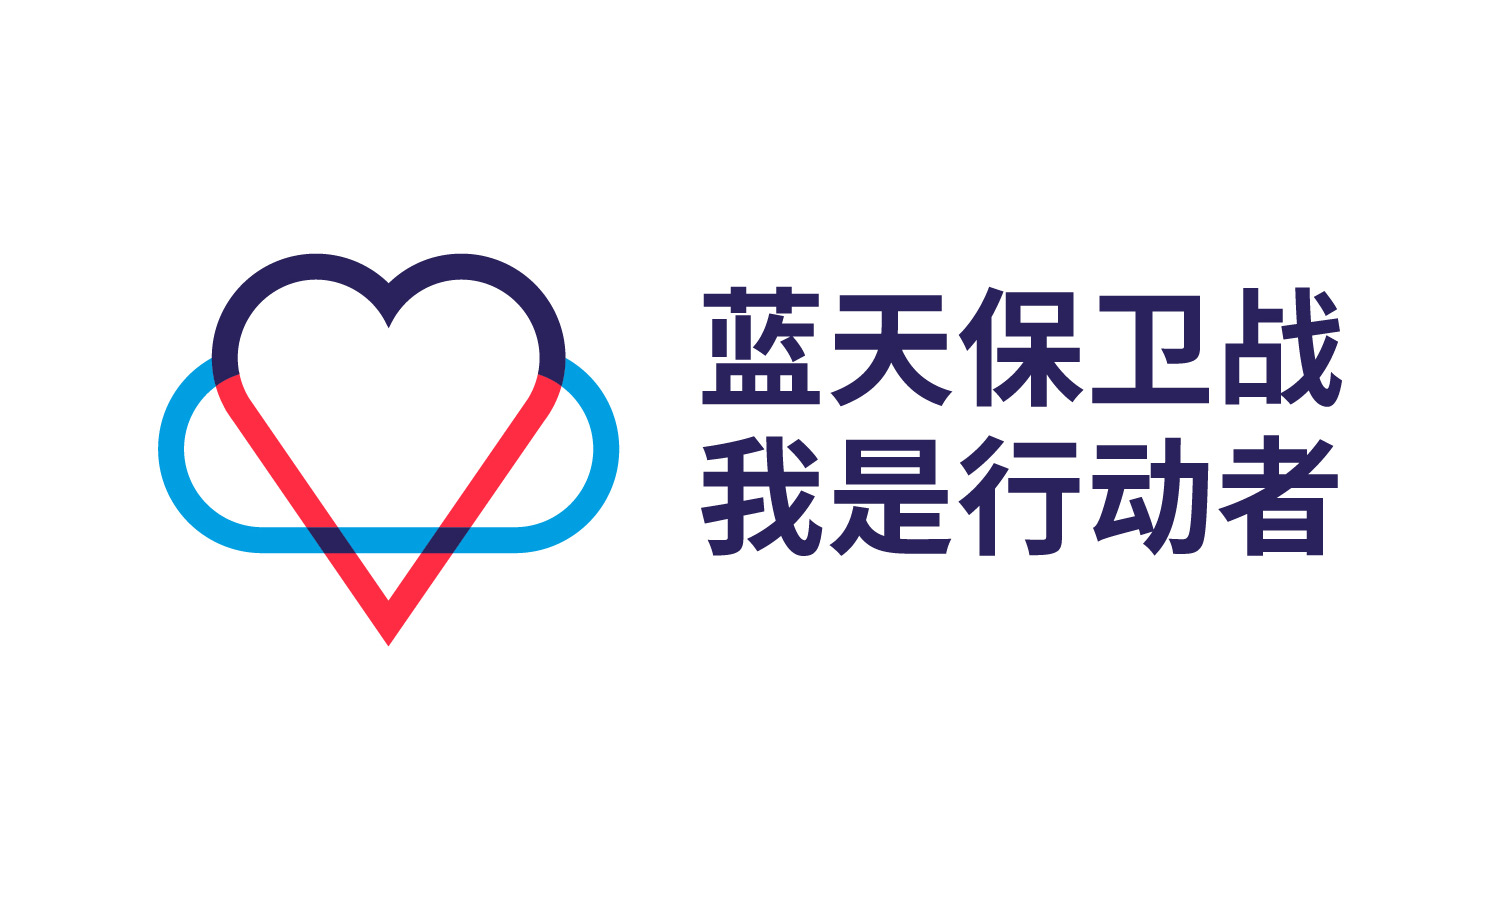 Image of World Environment Day Logo in Chinese